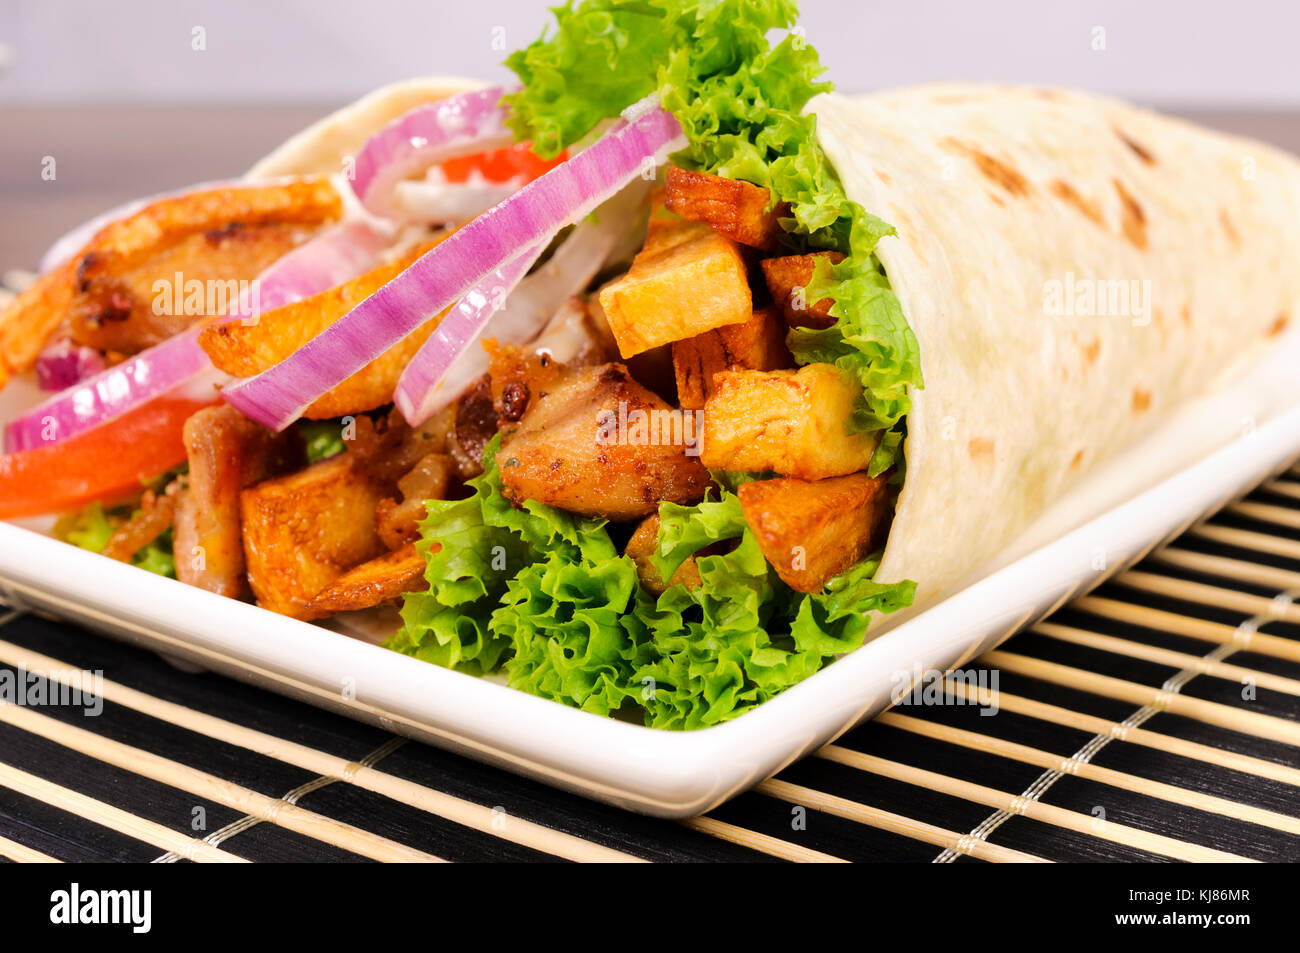 Selective focus in the middle of doner kebab - Stock Image